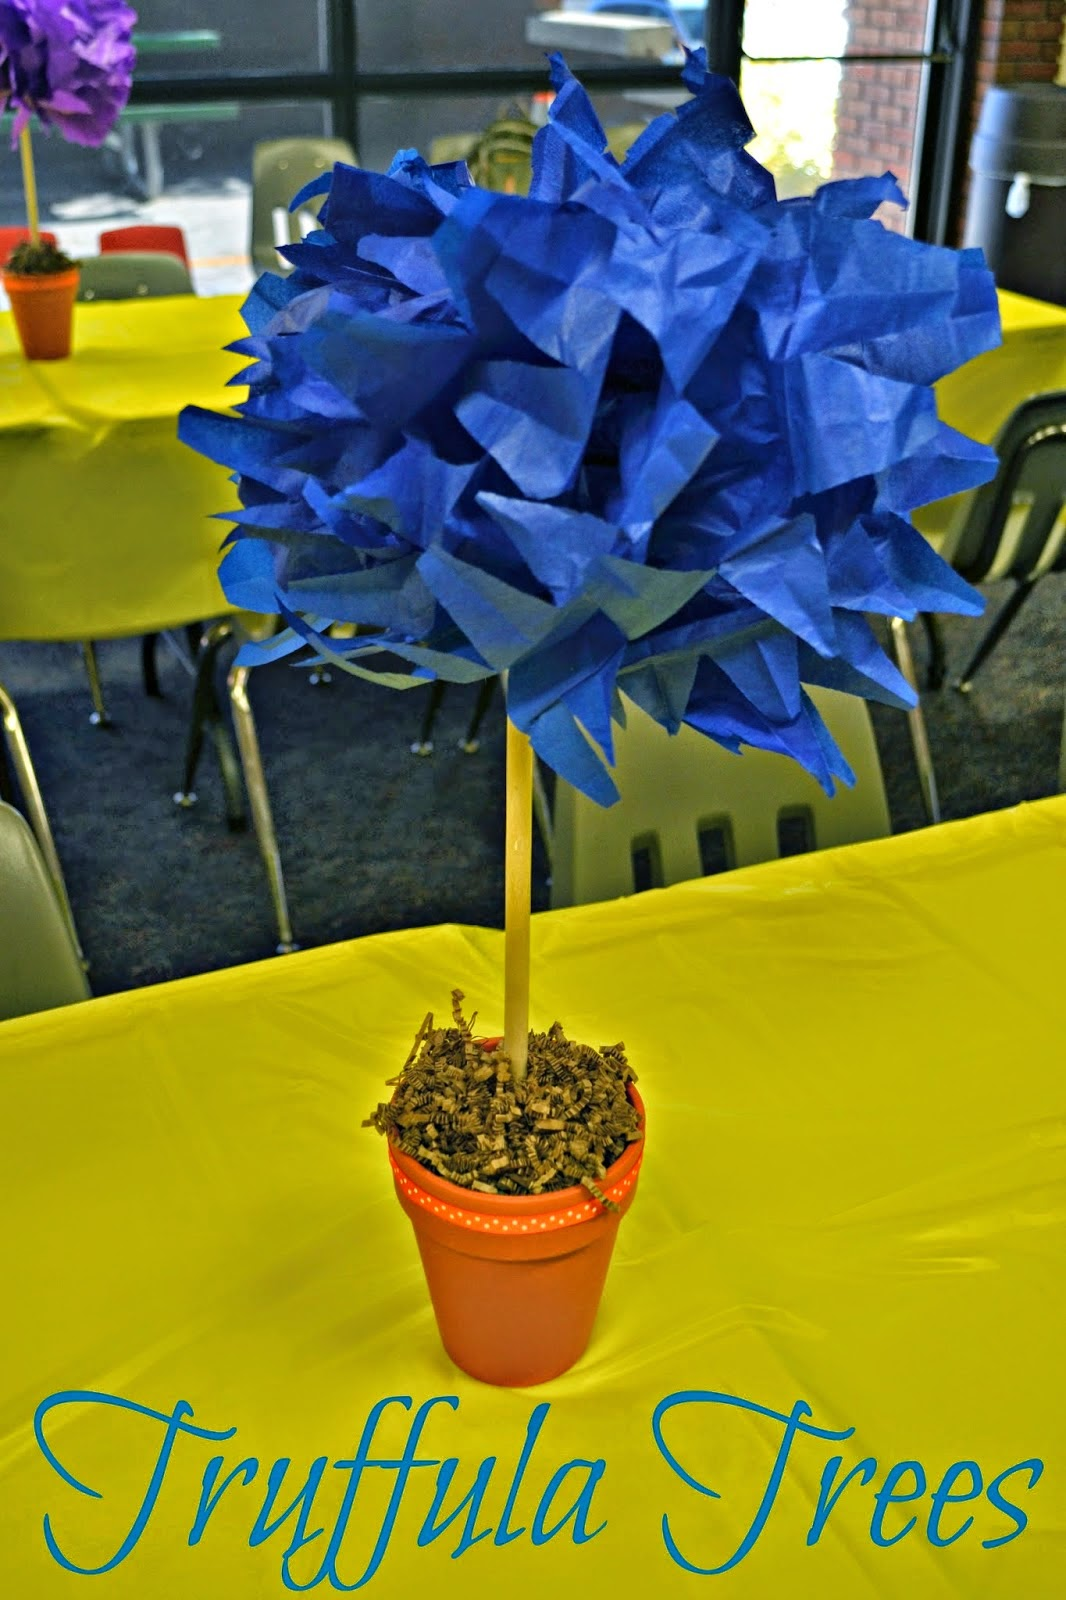 Dr. Seuss Day.  Dr. Seuss Day 2015.  Dr. Seuss Day parties.  Dr. Seuss Day fun.  Dr. Seuss birthday party